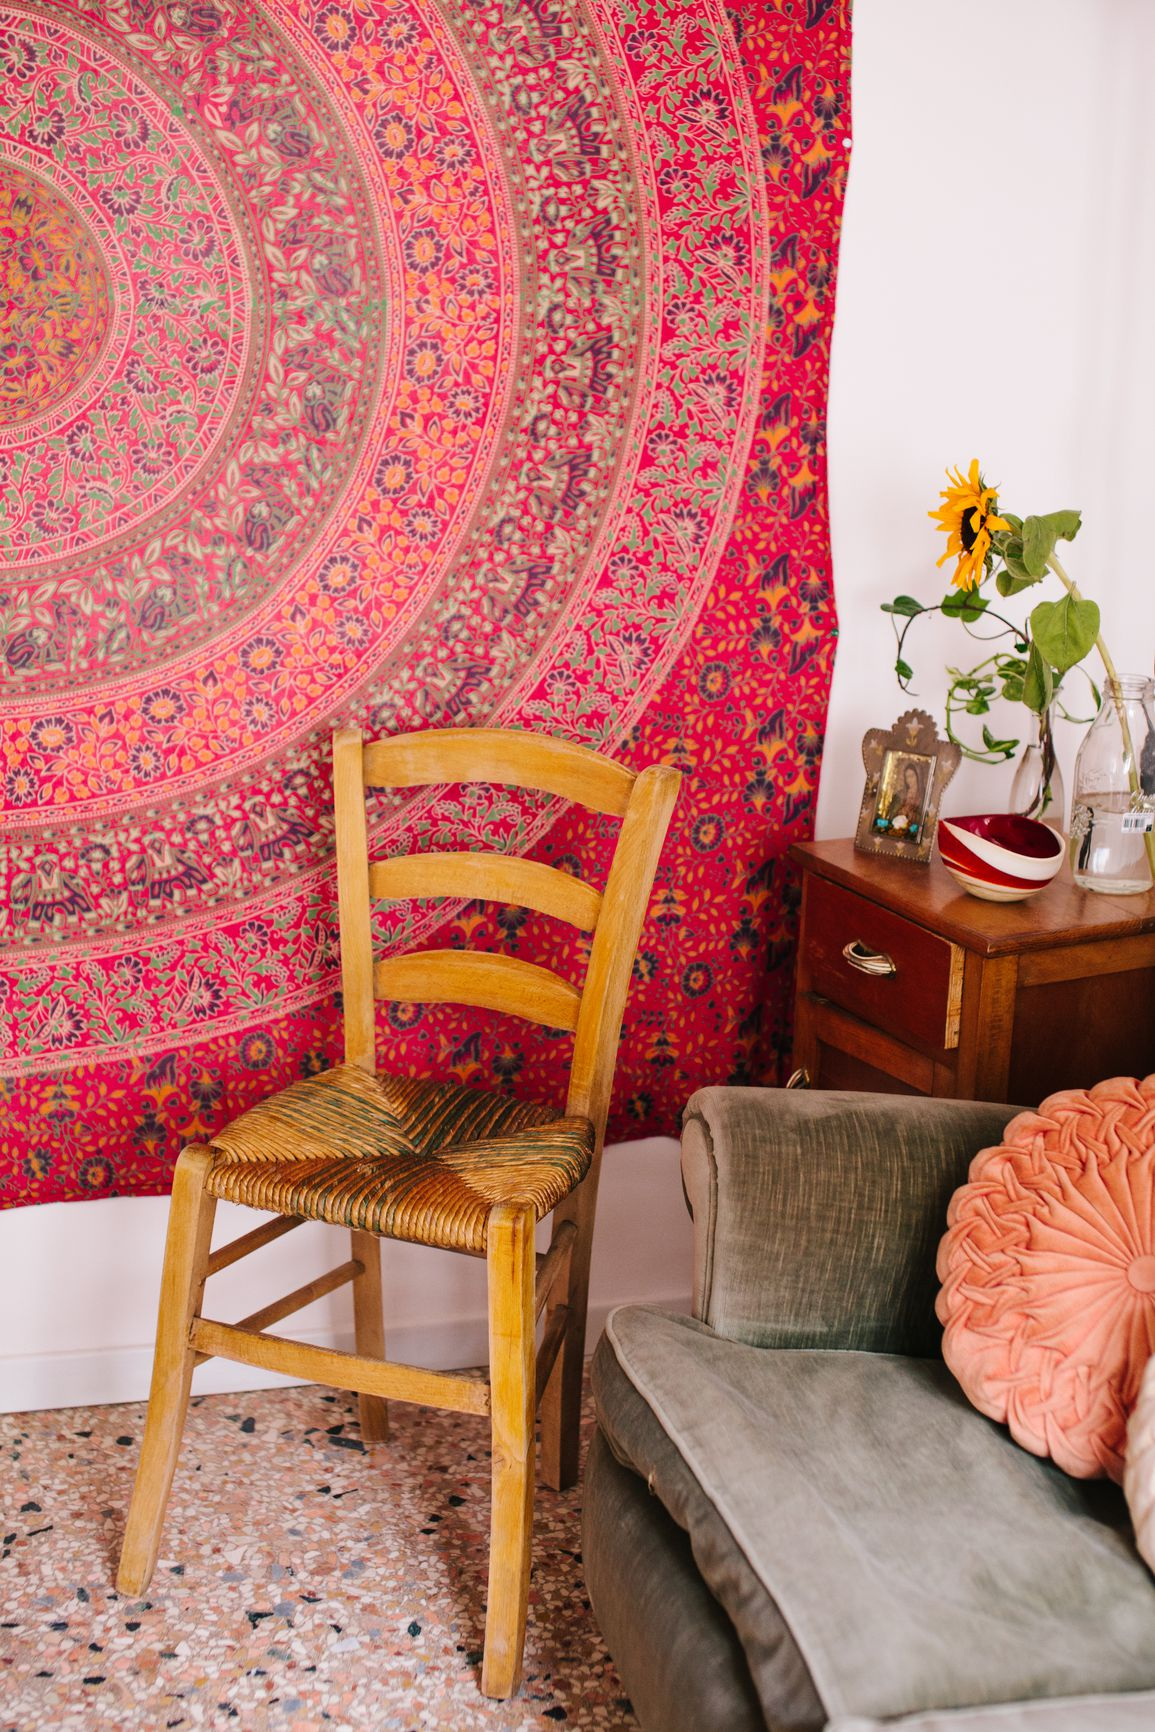 How To Decorate And Add Color To Your Walls Without Painting